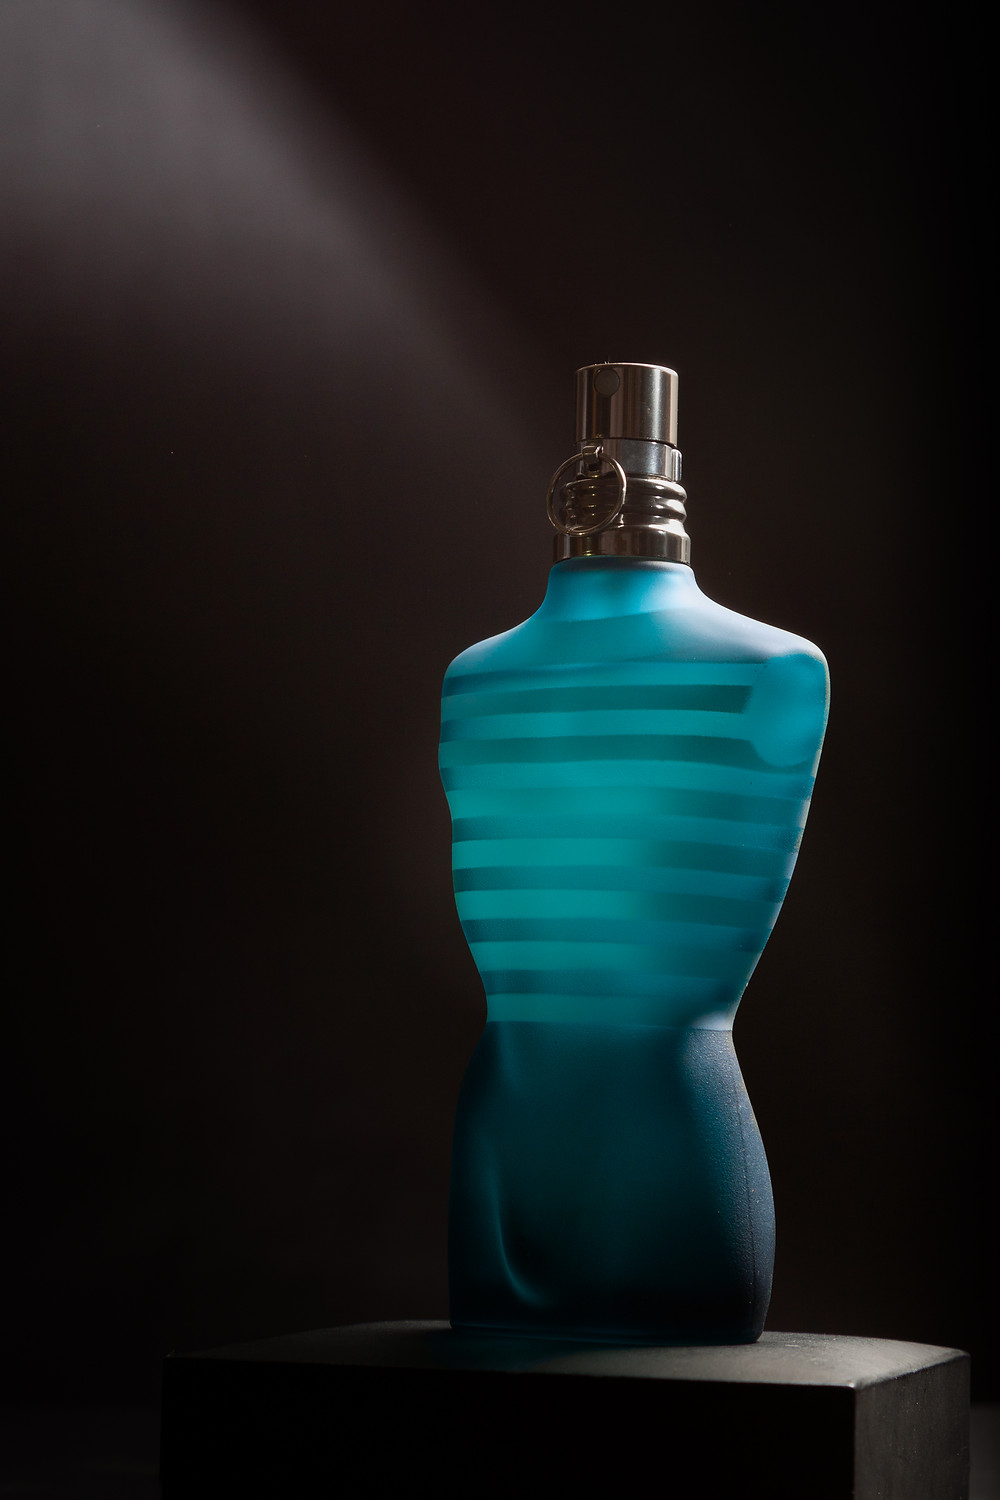 Jean Paul Gaultier Aftershave - Product Photography - Pro Photographer - Photography Blog